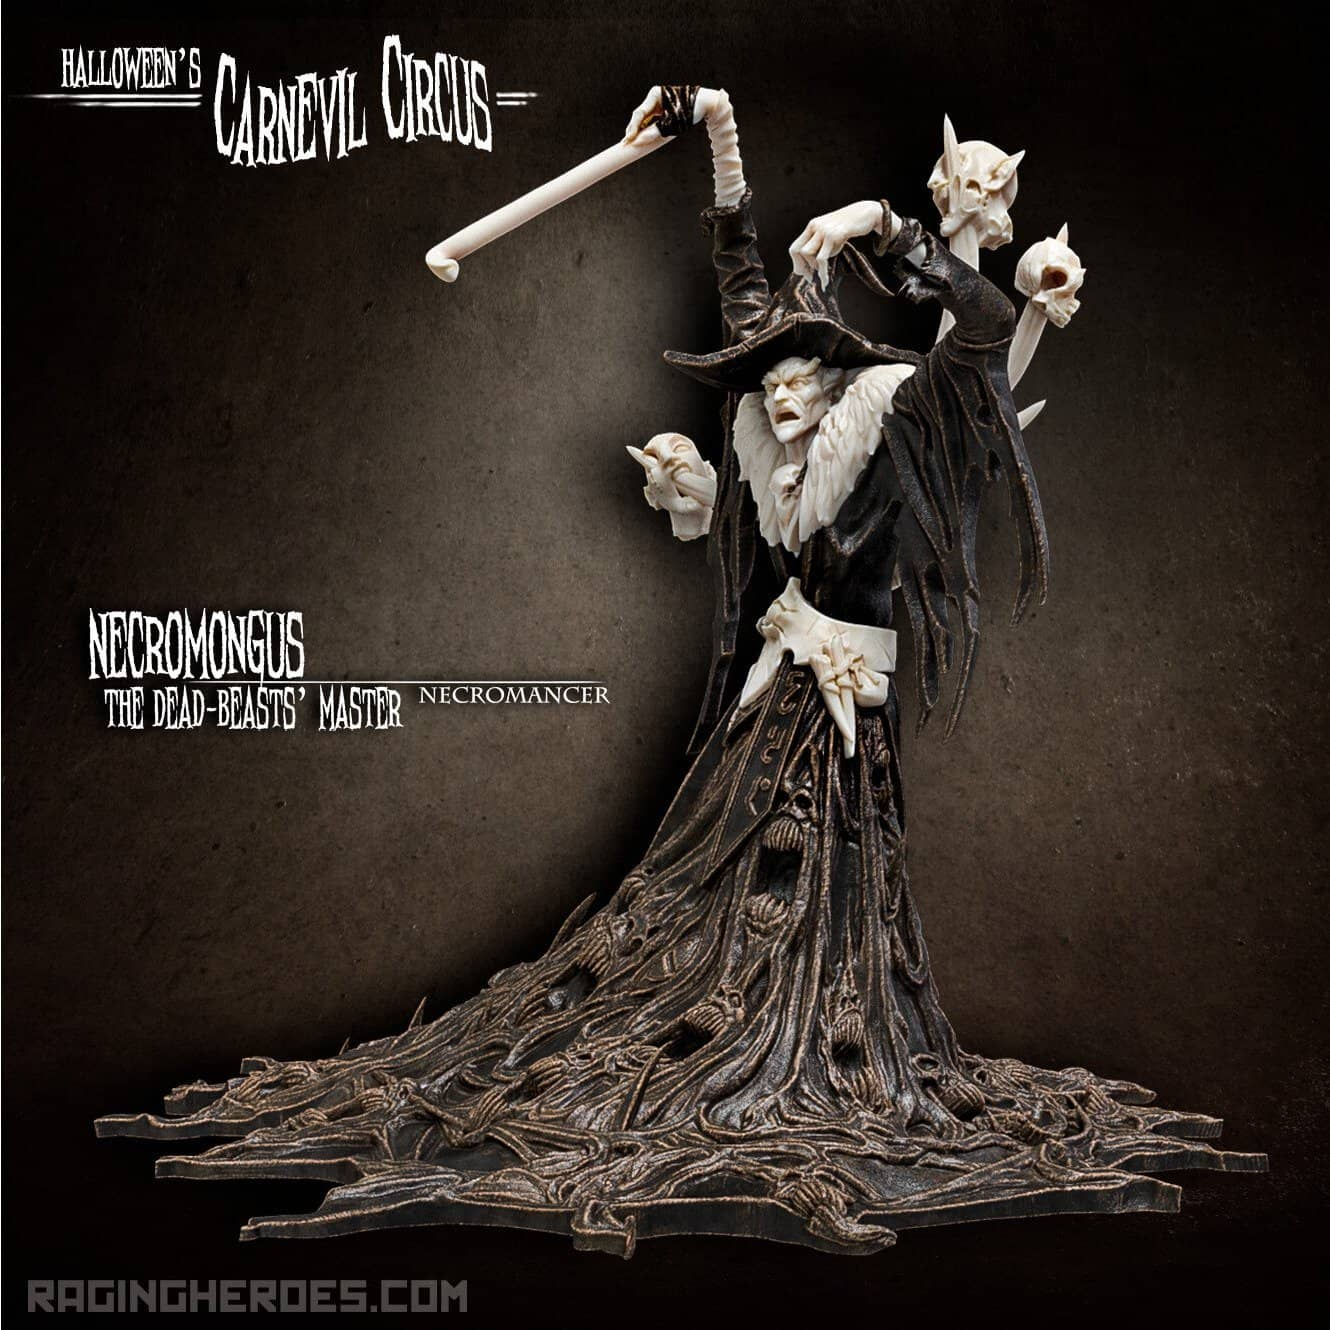 Necromongus the Dead-Beasts' Master, Necromancer (CC - F) - Raging Heroes